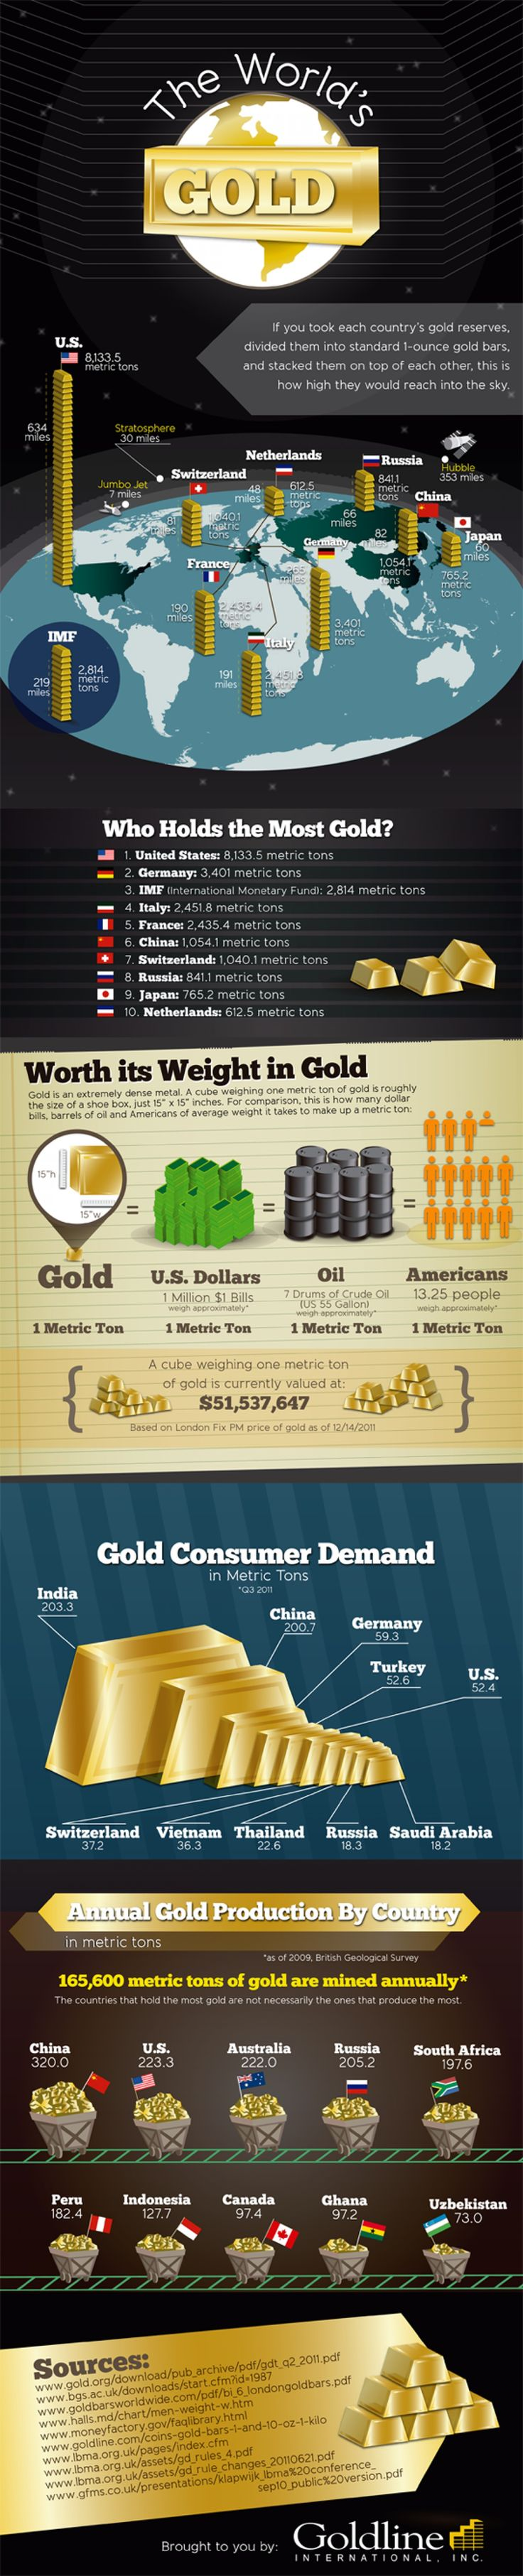 The World's Gold, Investing in gold, gold price, gold ira, gold ira rollover, gold, gold investment, ira gold, regal assets, regal gold